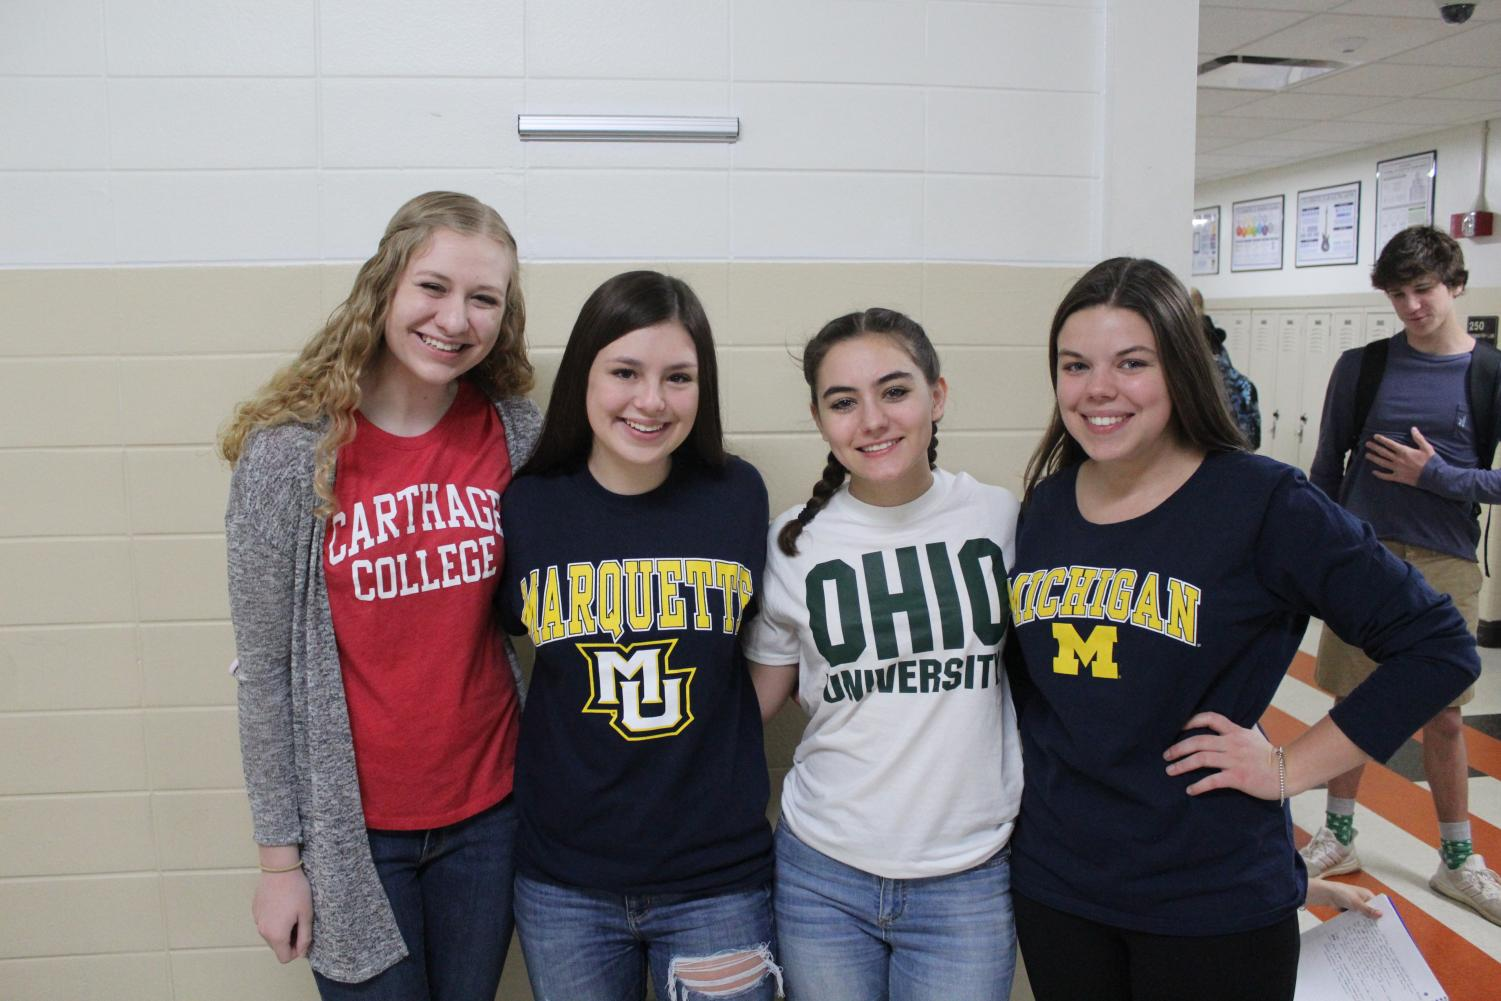 Ally+Kline+will+be+attending+Carthage+College%2C+Mariel+Sebby+is+enrolled+in+Marquette+University%2C+Kate+Mauer+is+going+to+Ohio+University+and+Anna+Wolski+is+entering++University+of+Michigan+in+the+fall.+%0A